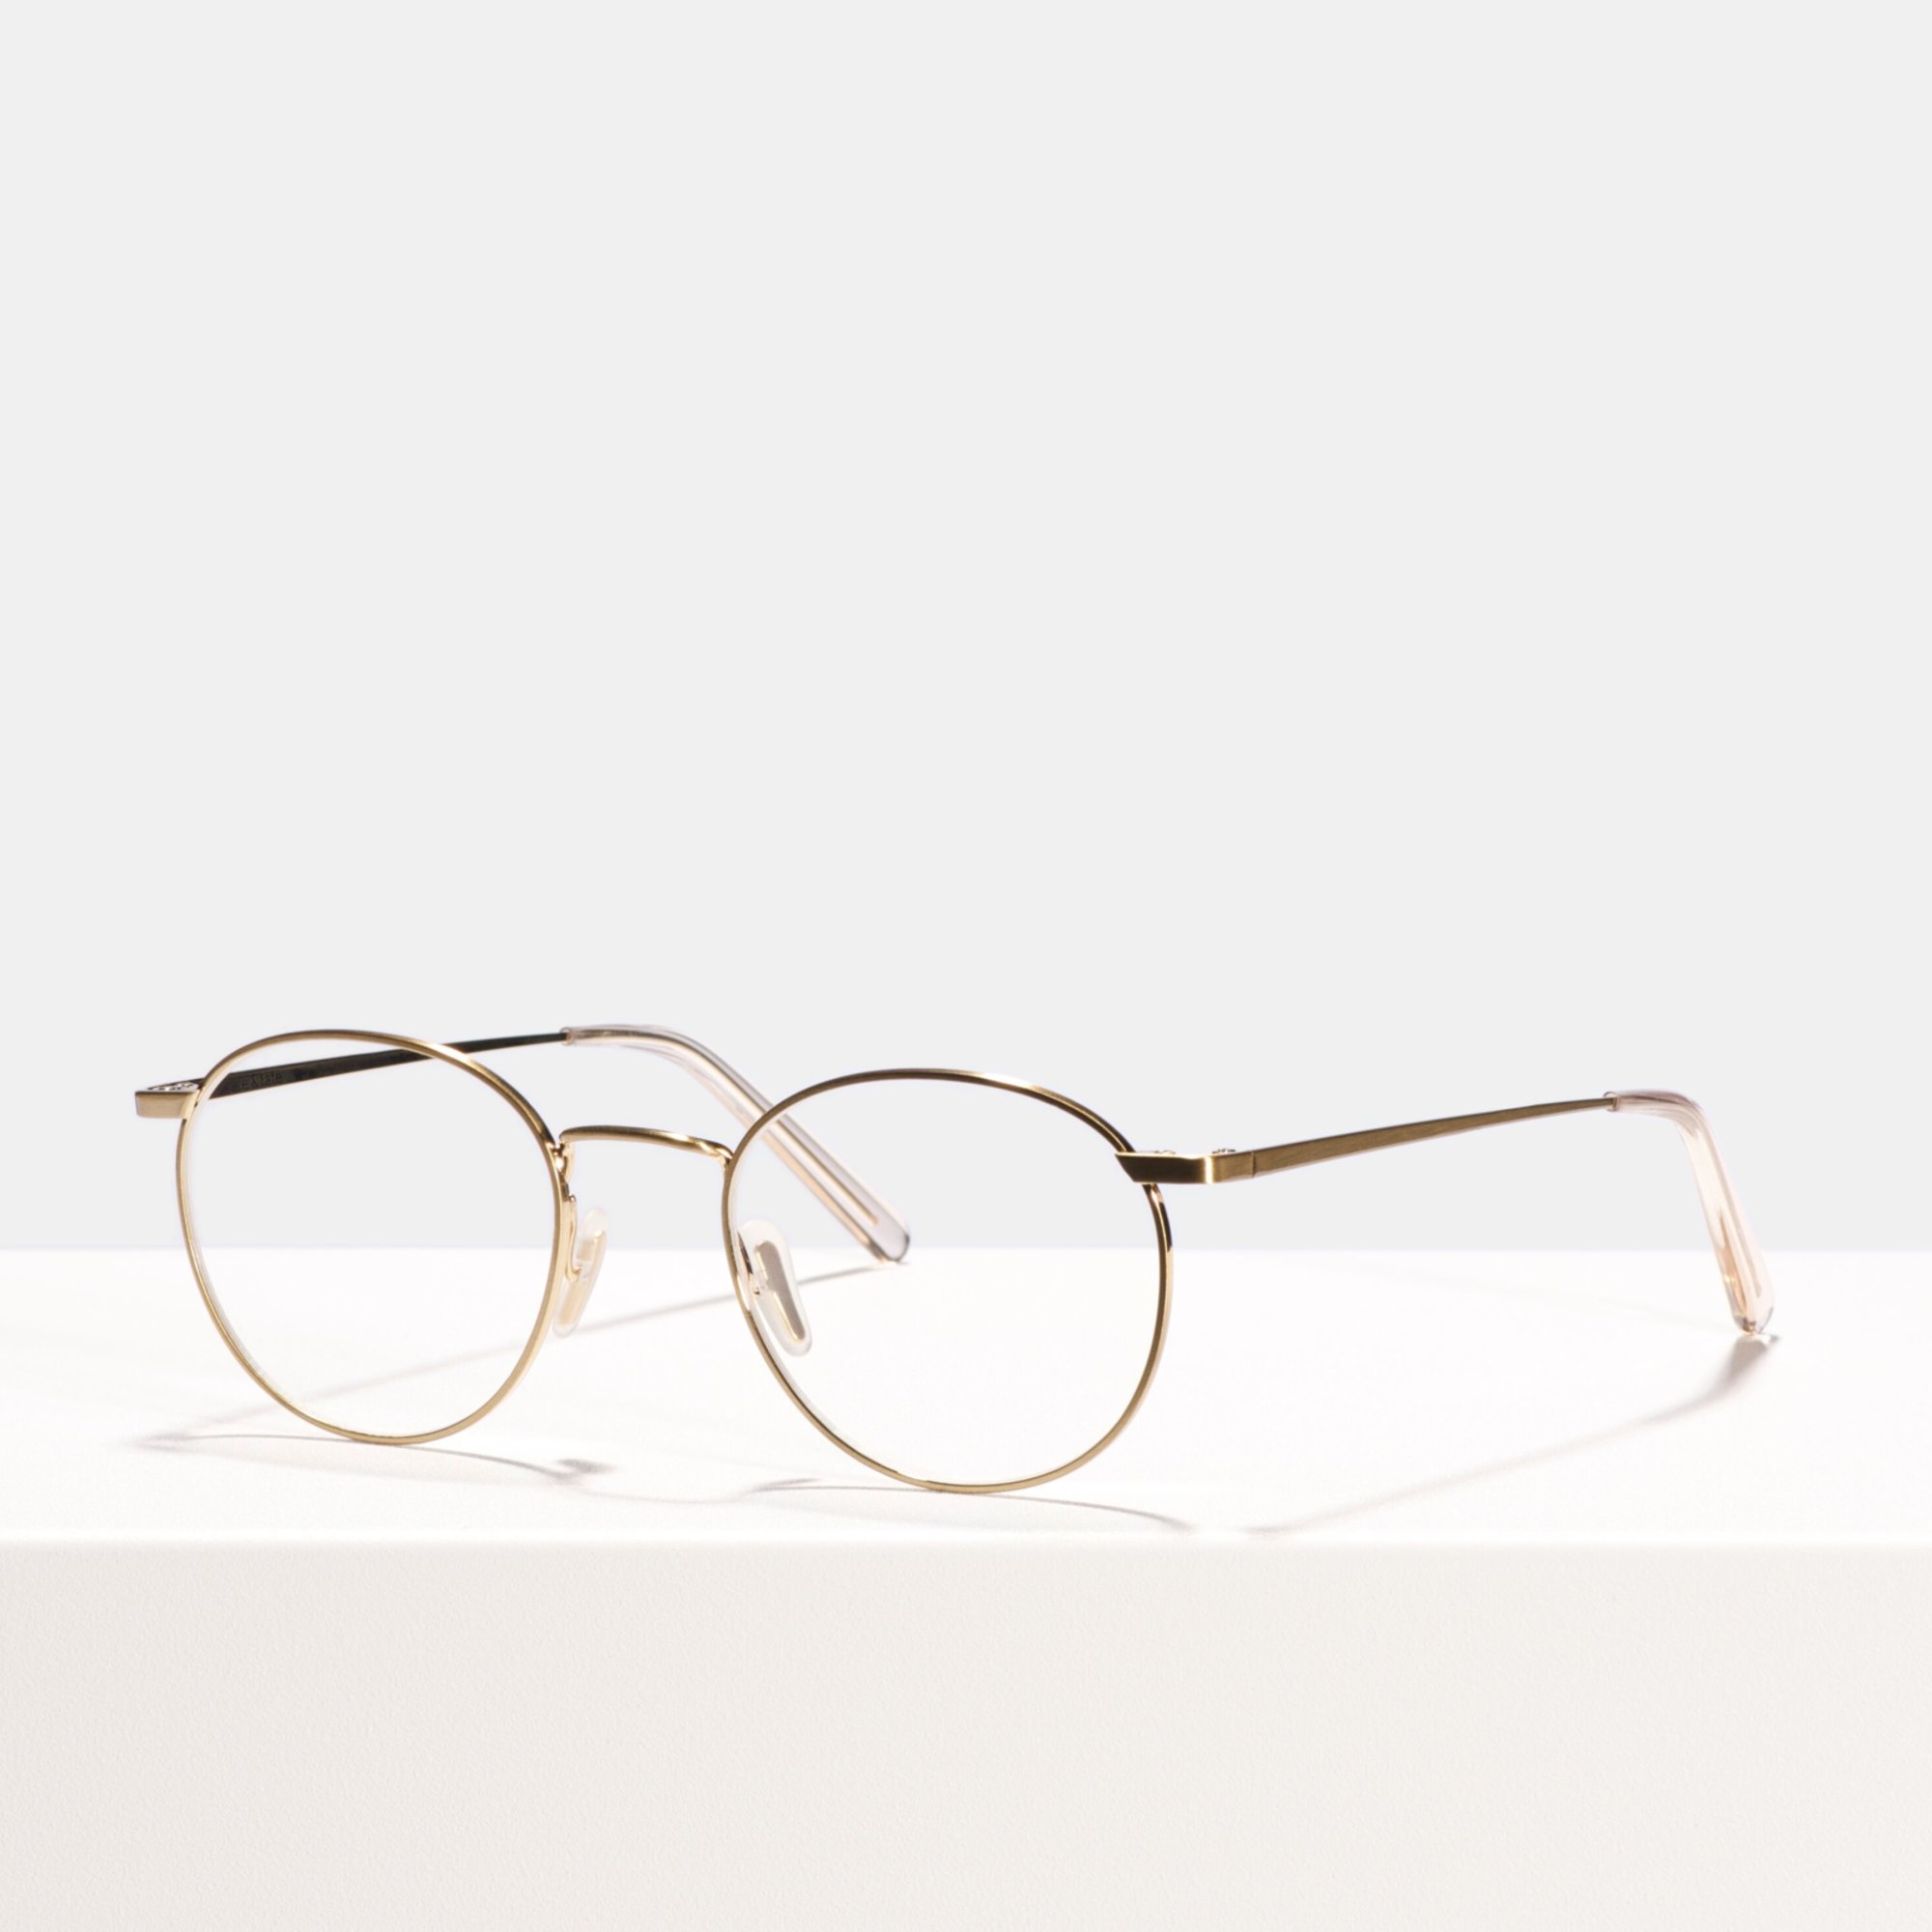 Ace & Tate Glasses | rund Metall in Gold